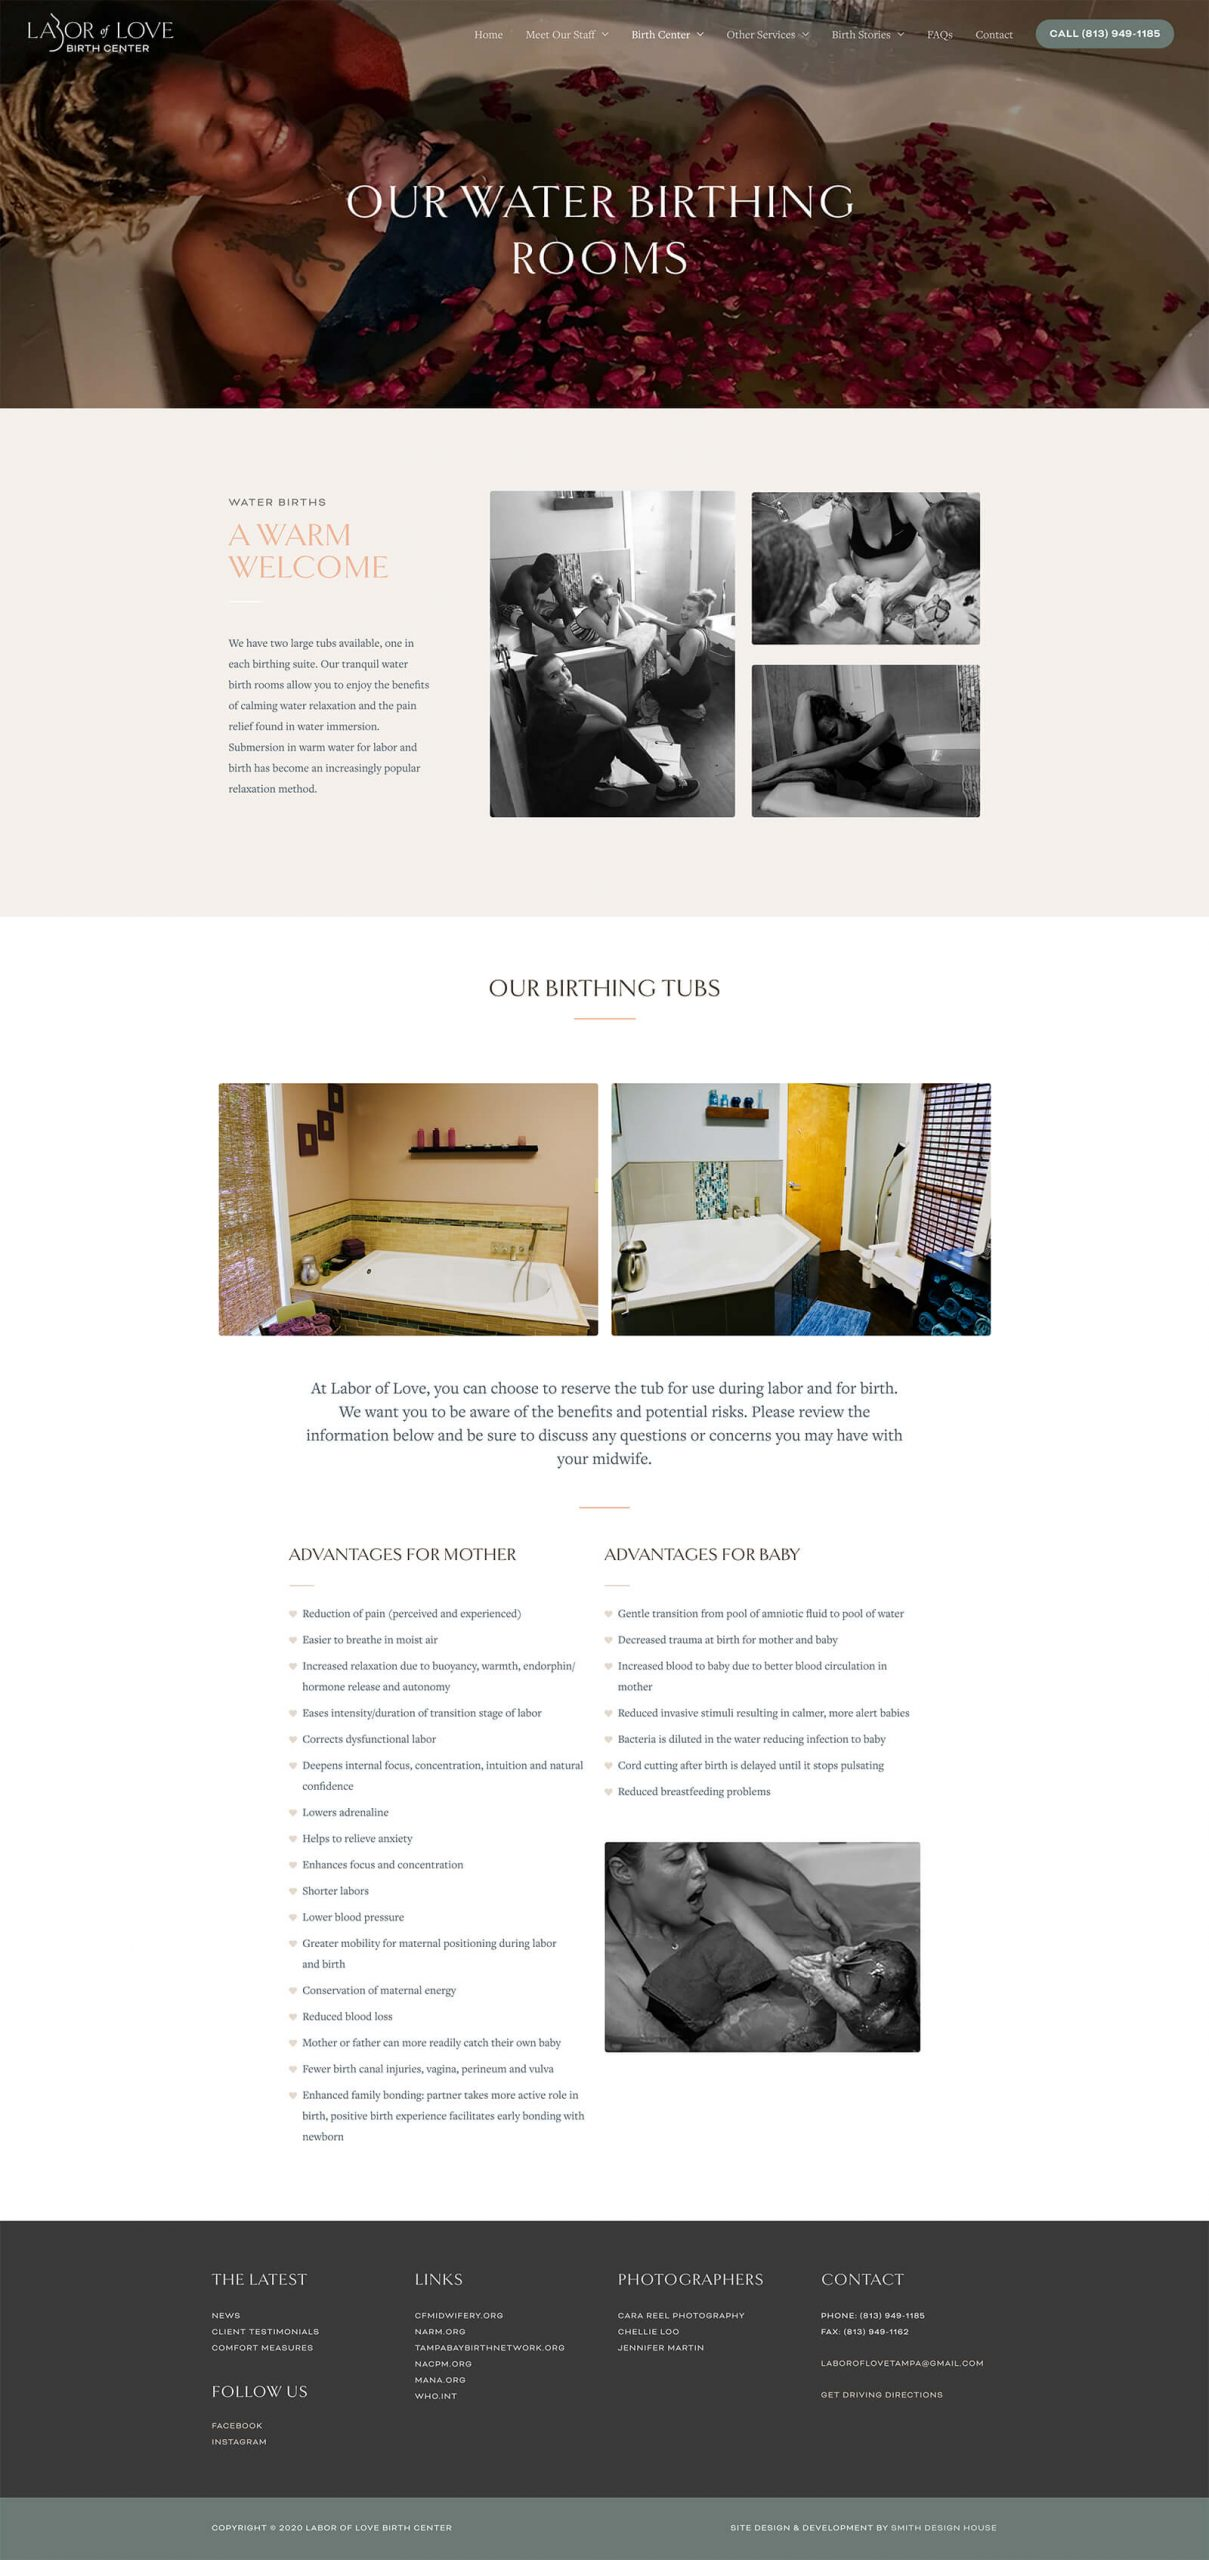 Labor of Love Water Birth Rooms page design